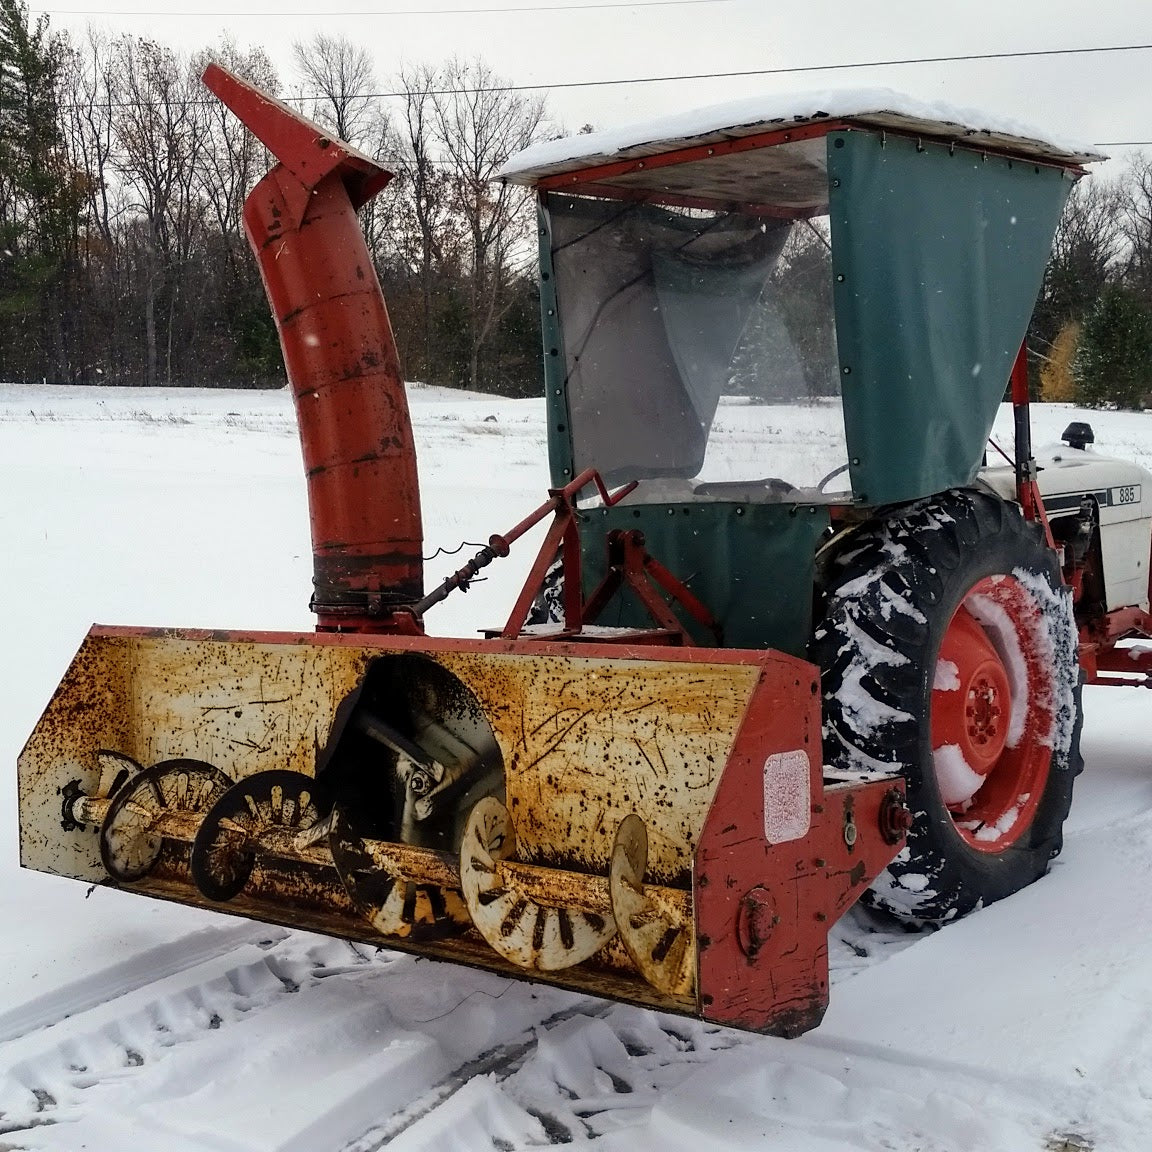 Clearing Snow Finger Lakes Style with a Tractor